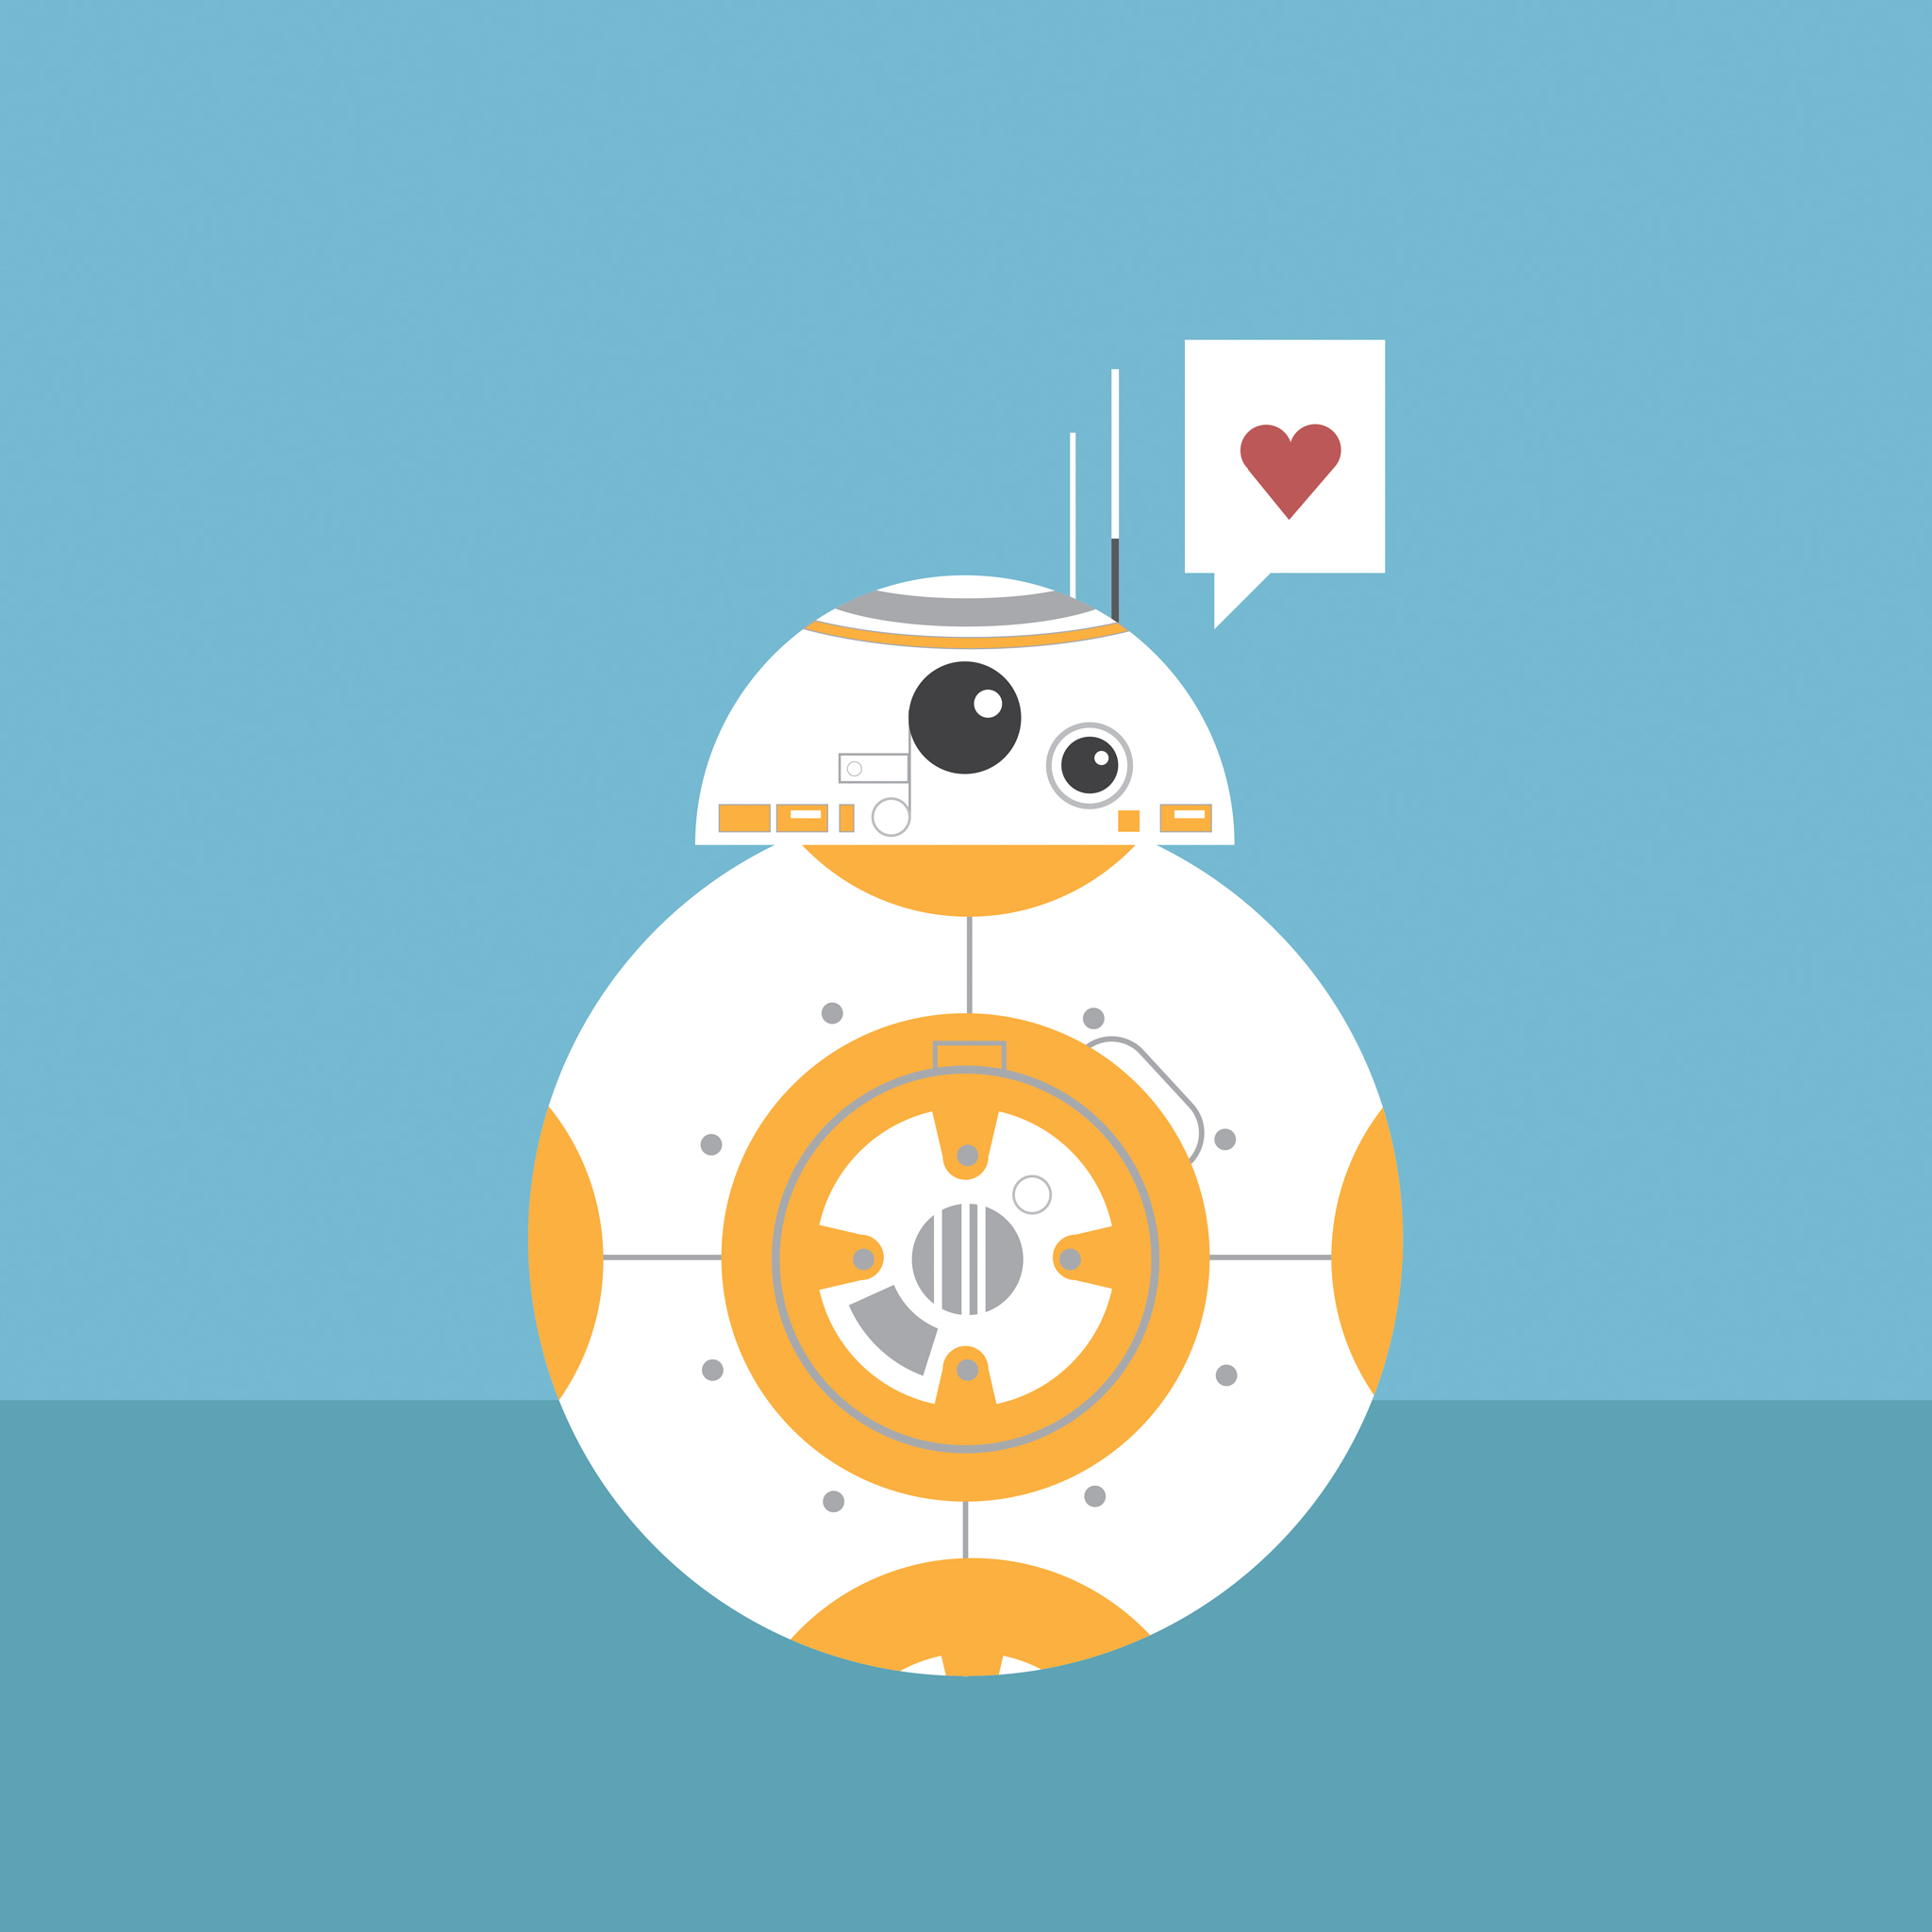 Adventure Time Wallpaper Hd Android Bb 8 By Virginia Poltrack Dsktps